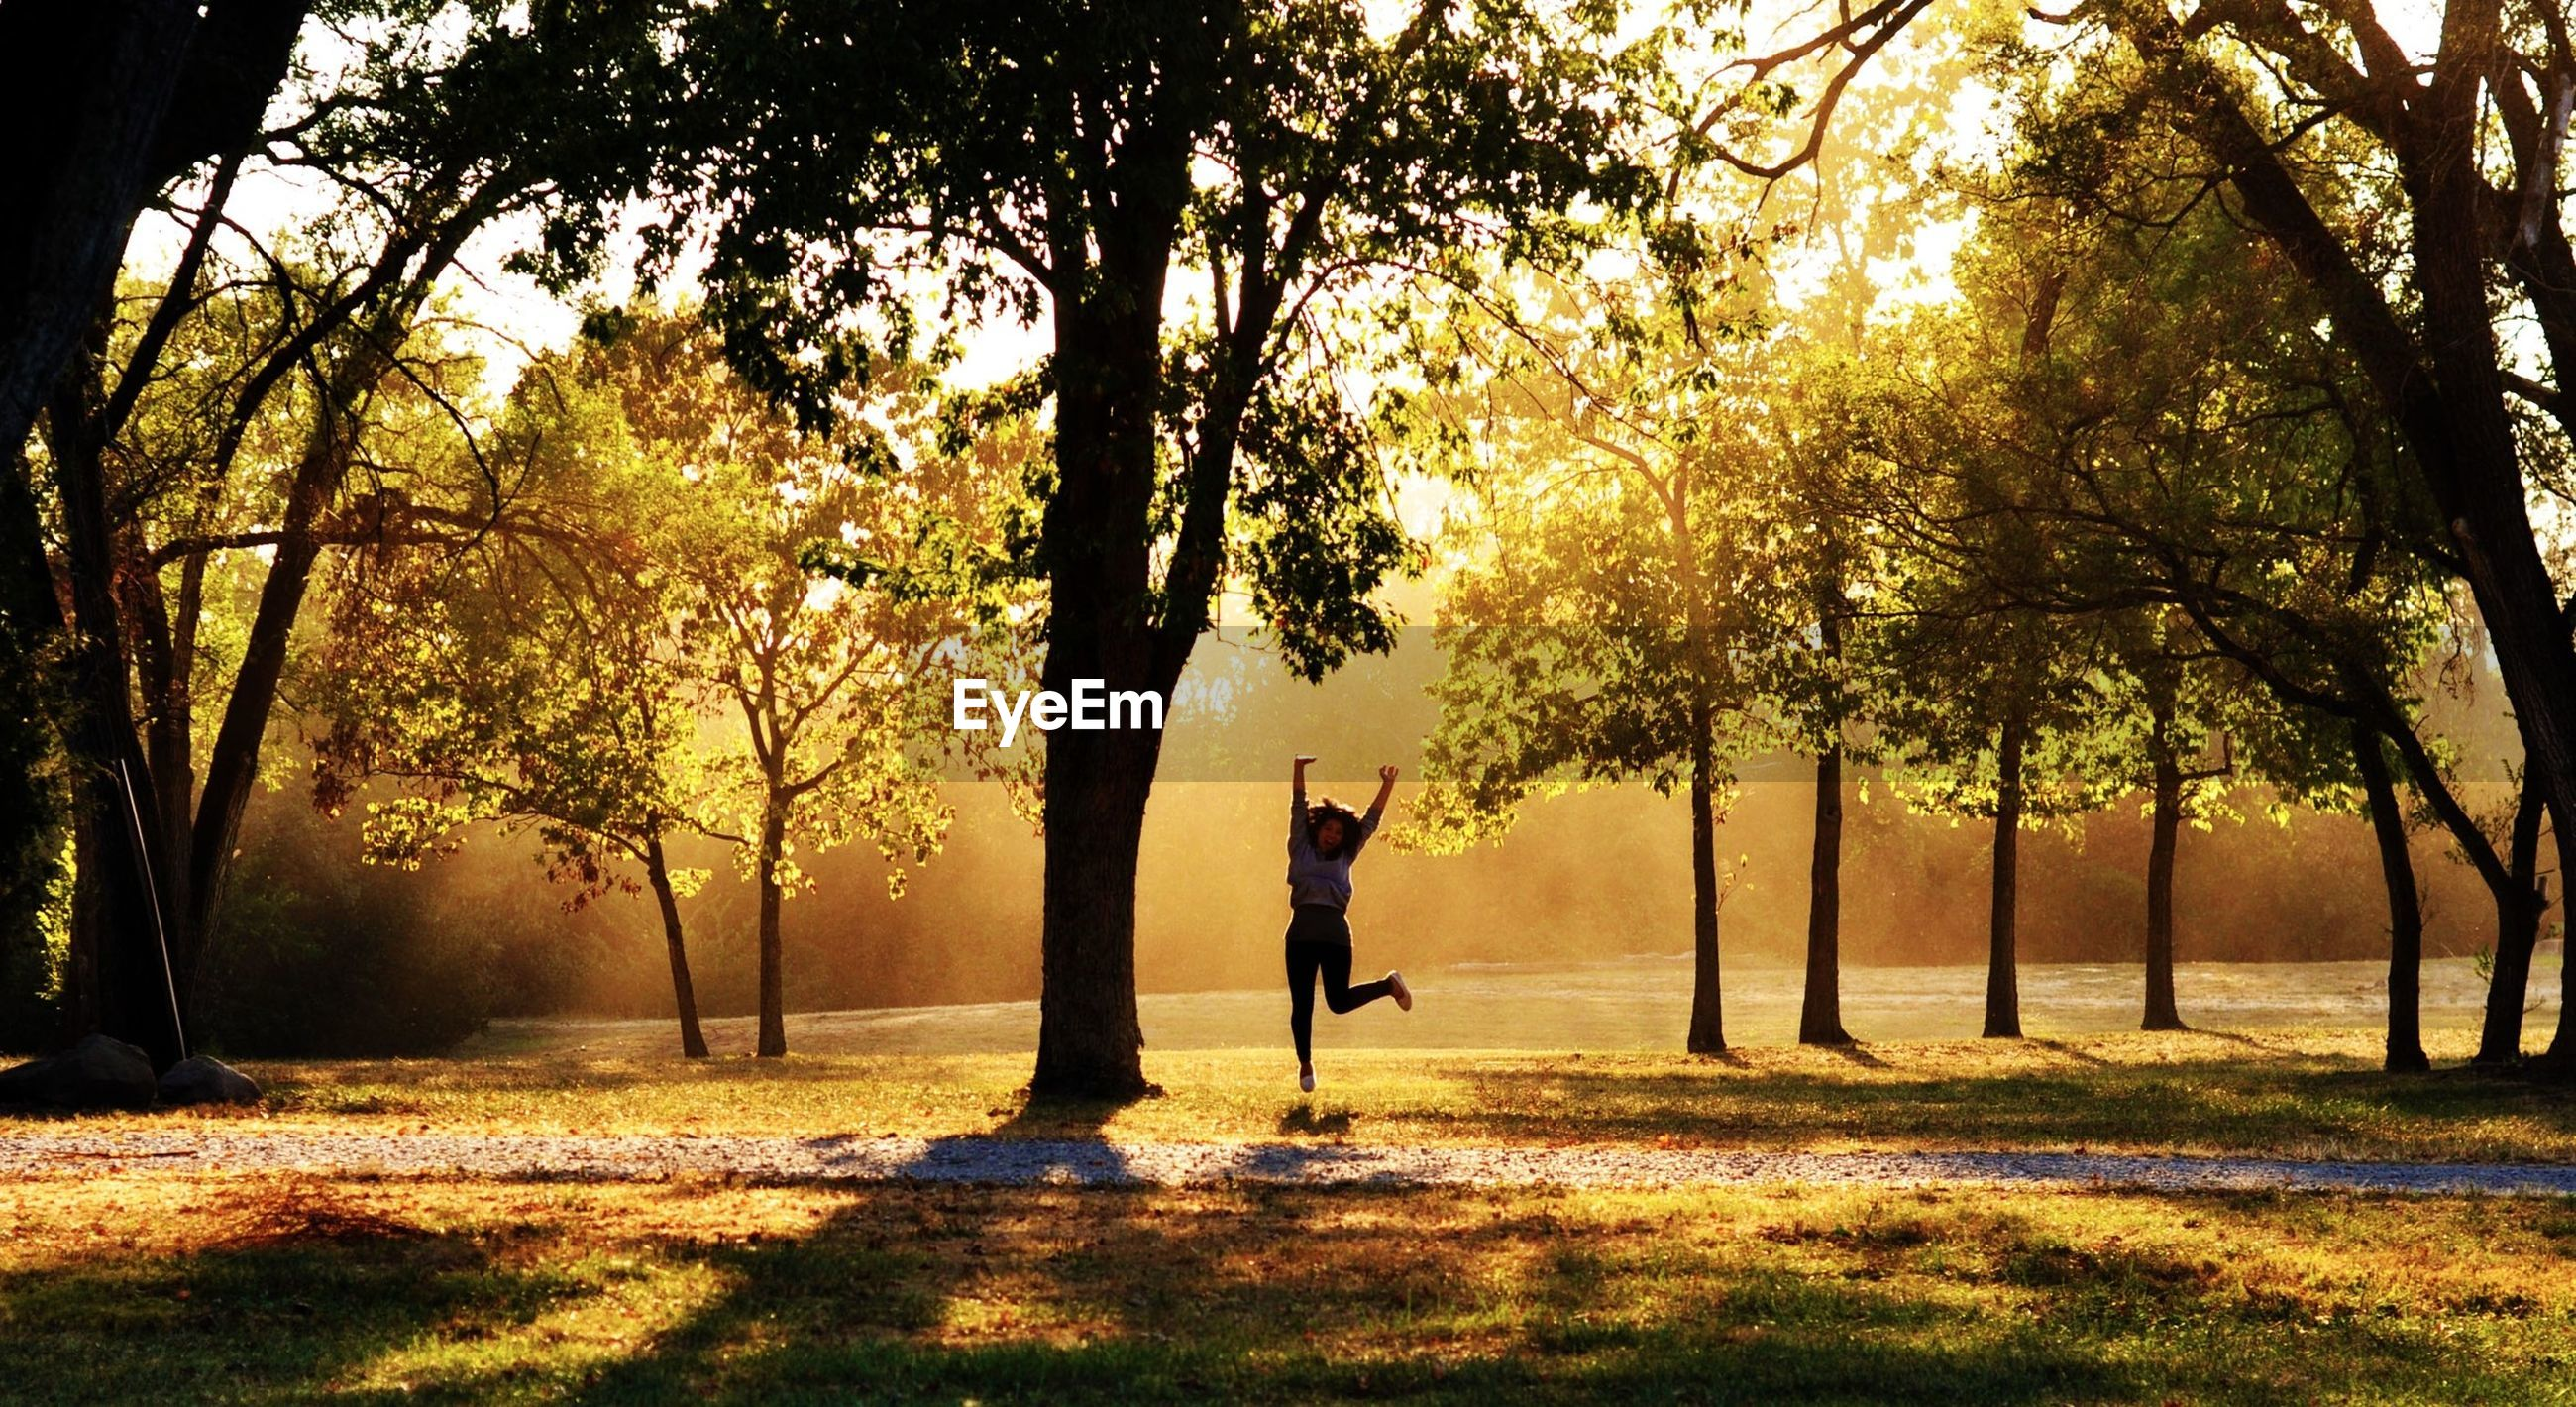 tree, tree trunk, tranquility, nature, autumn, one person, tranquil scene, park - man made space, orange color, growth, beauty in nature, sunset, landscape, sunlight, scenics, field, change, full length, branch, park